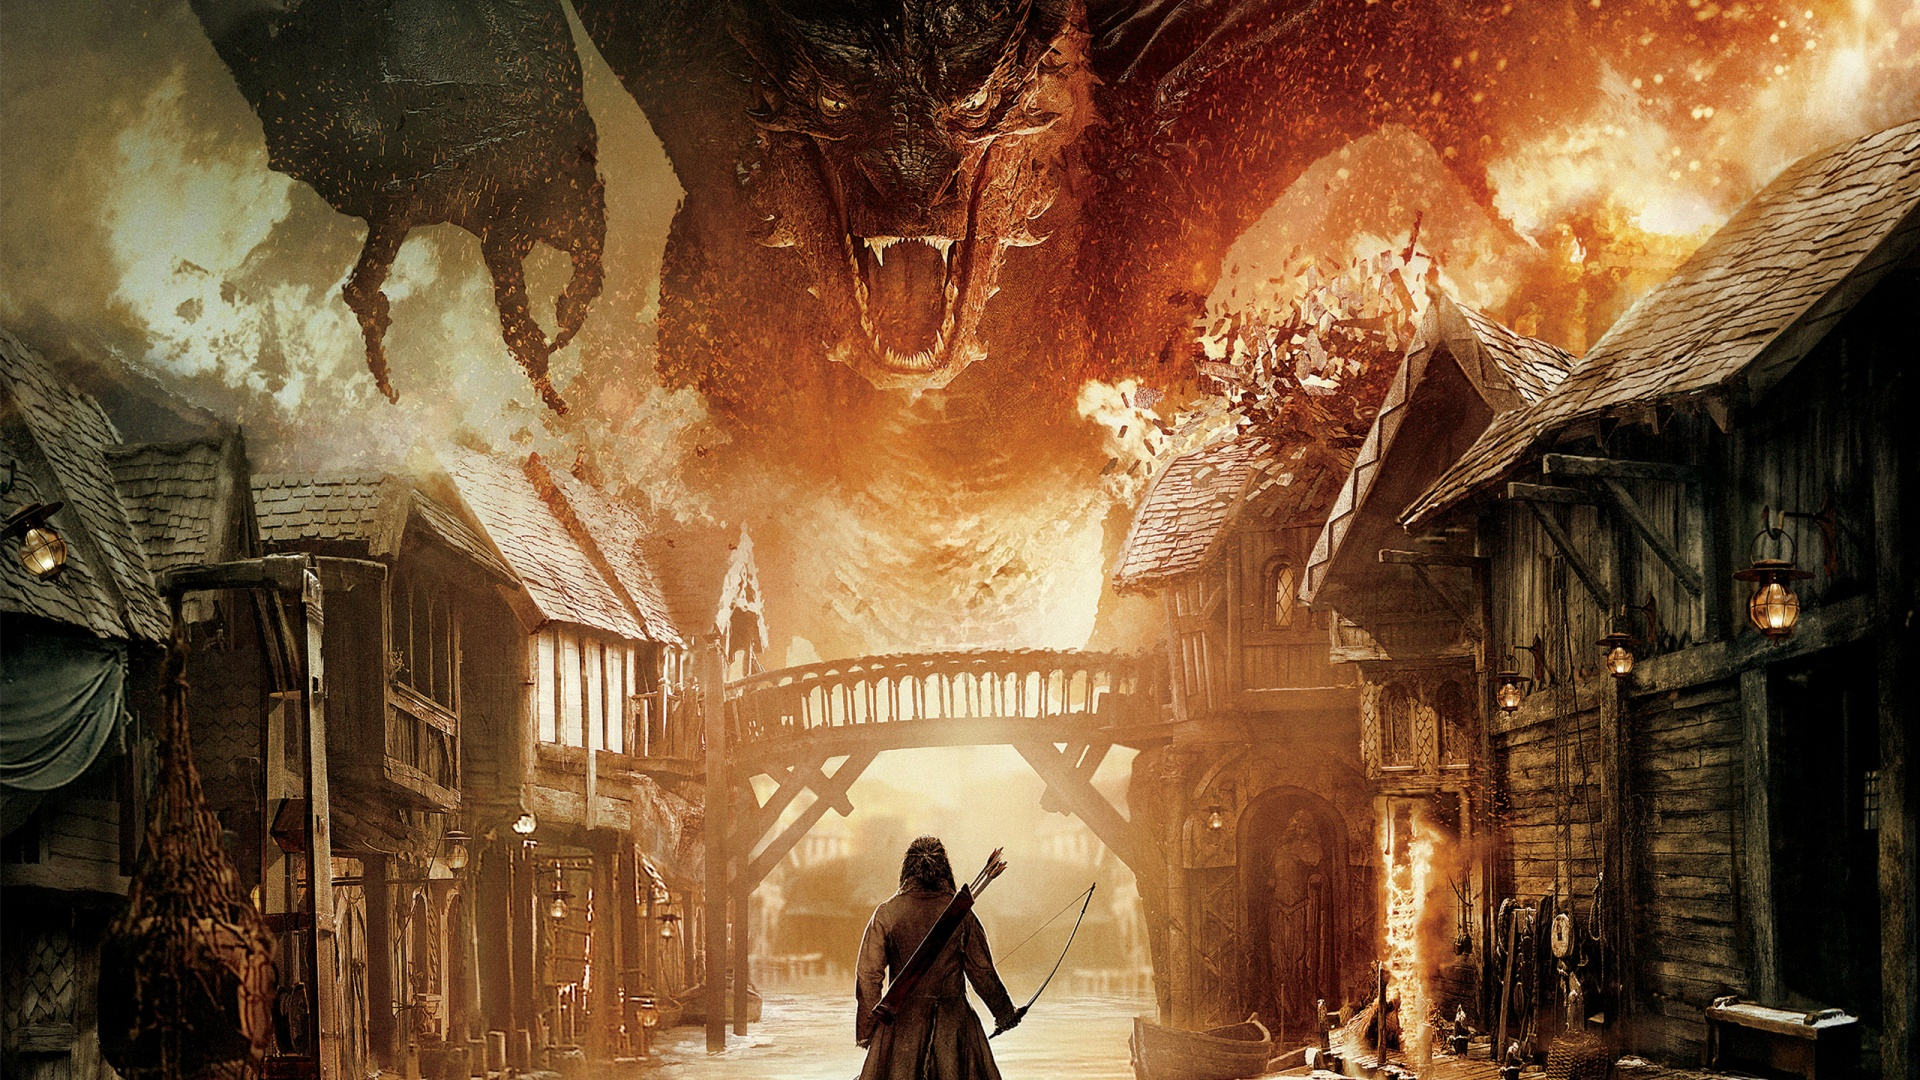 The Hobbit Battle Of Five Armies Wallpapers